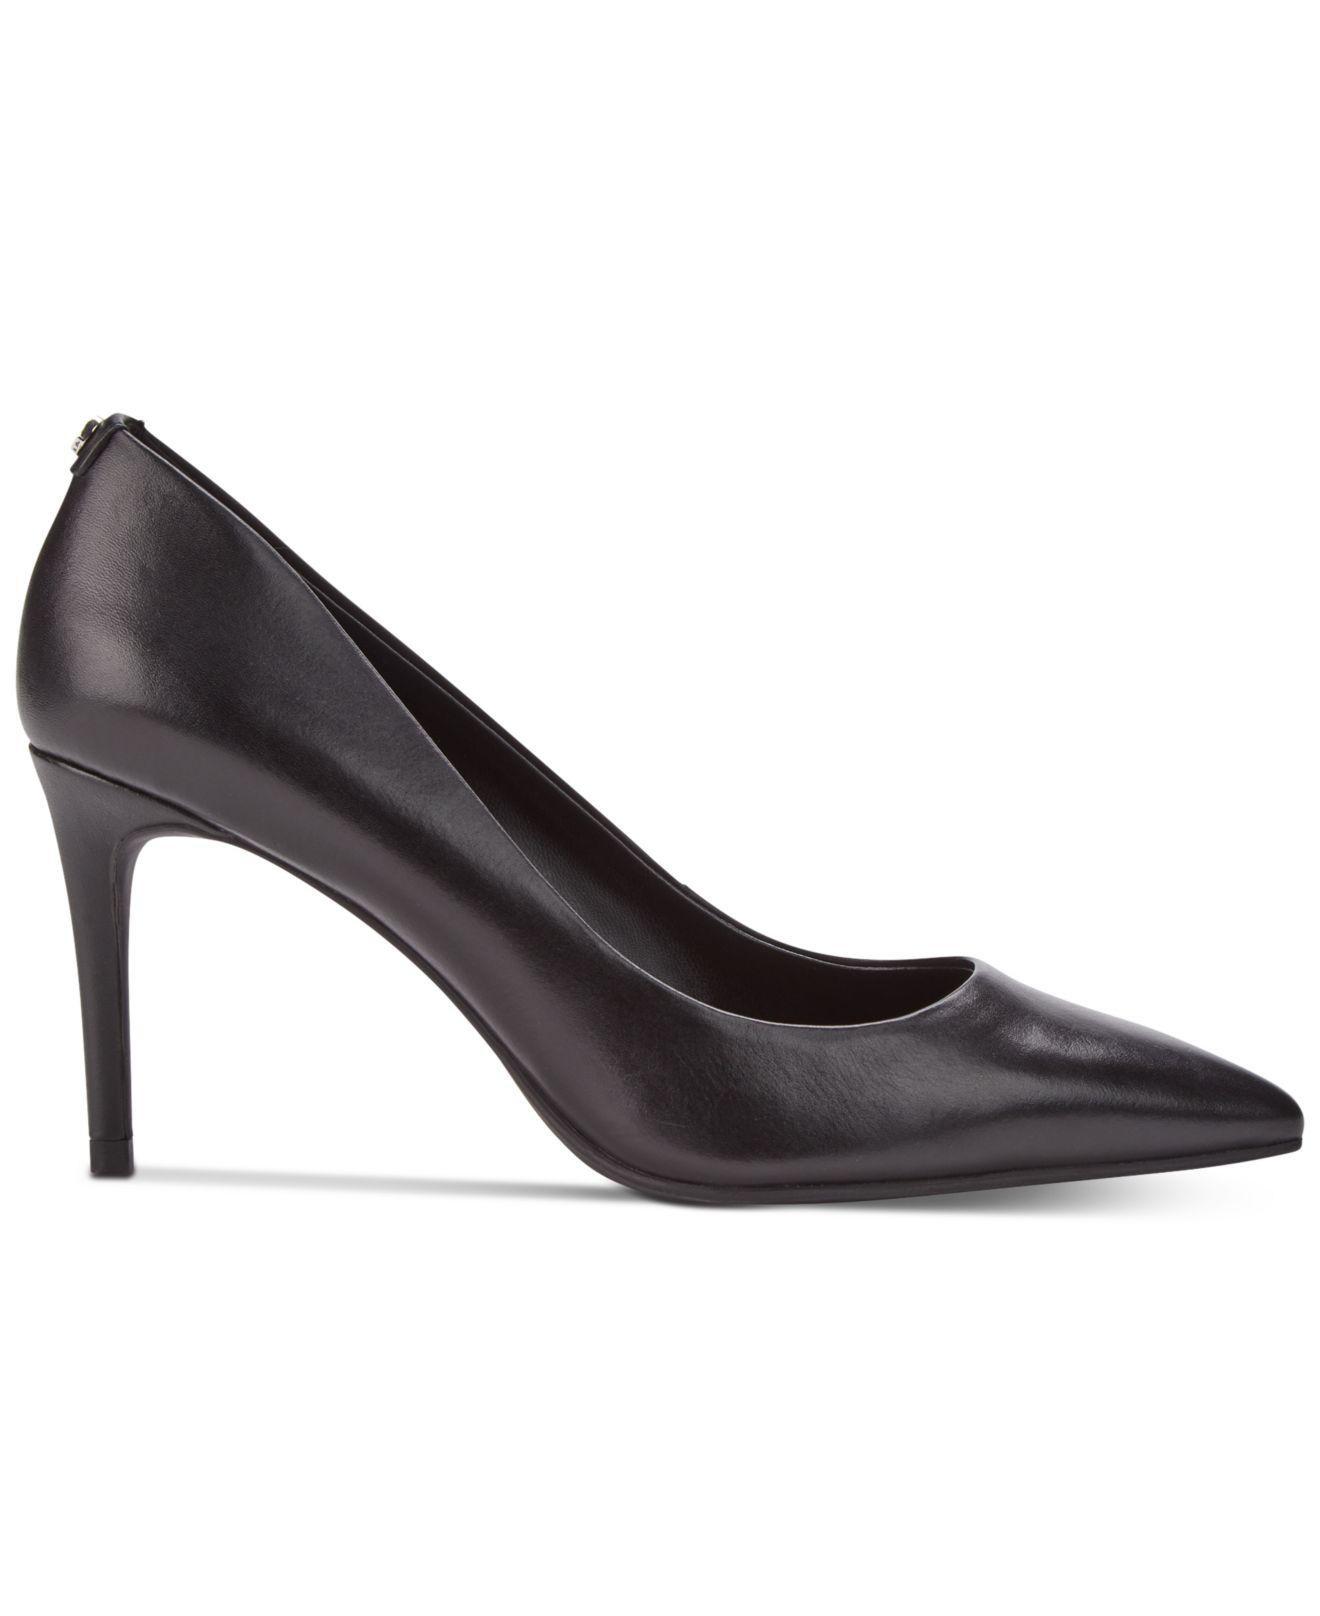 b394871bb4 DKNY Letty Pumps, Created For Macy's in Black - Lyst